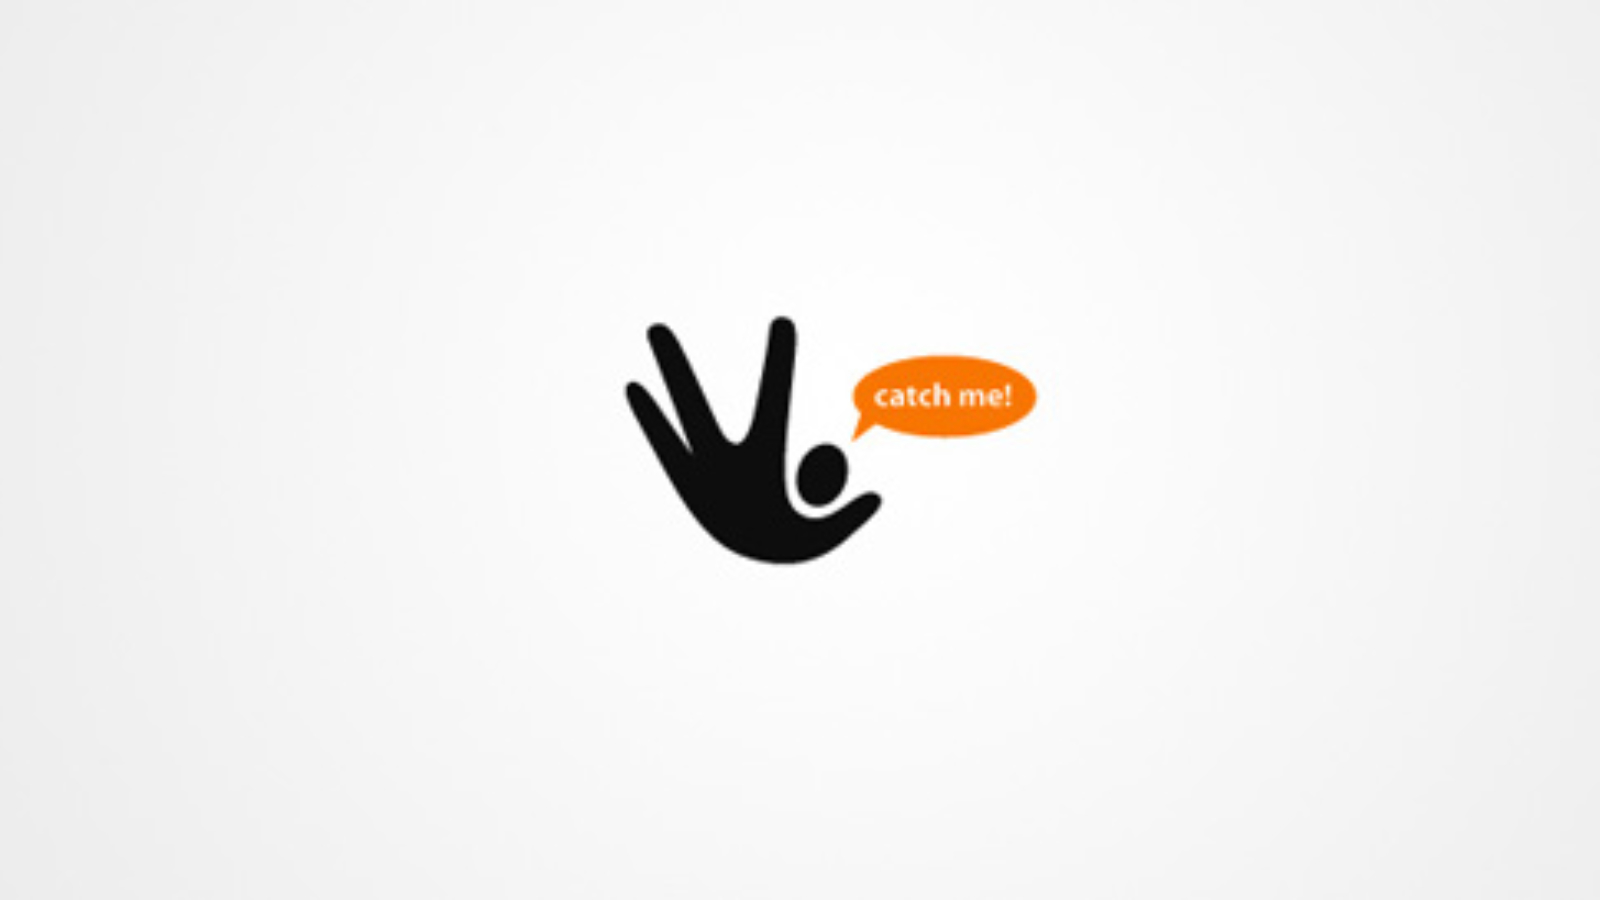 creative-logos-2-catch